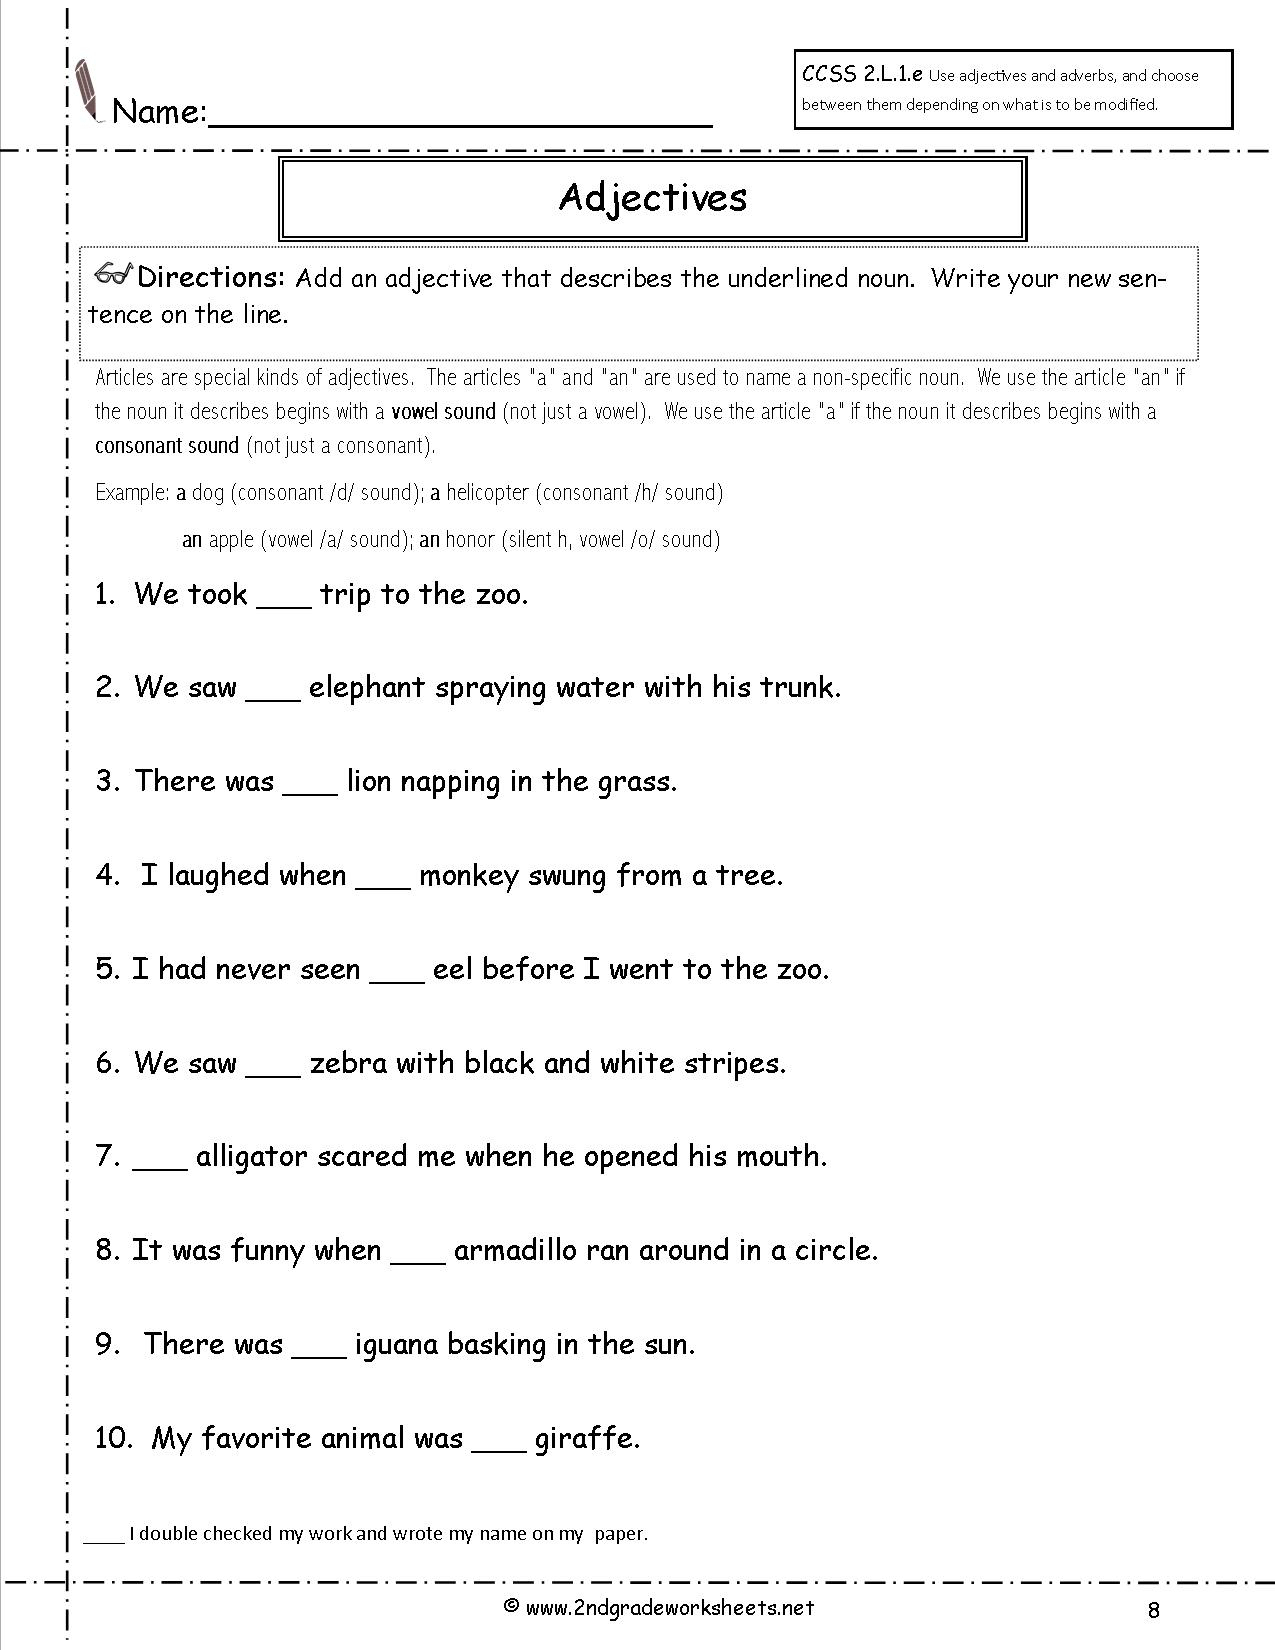 Free Printable Second Grade Worksheets » High School Worksheets | Grammar Worksheets High School Printables